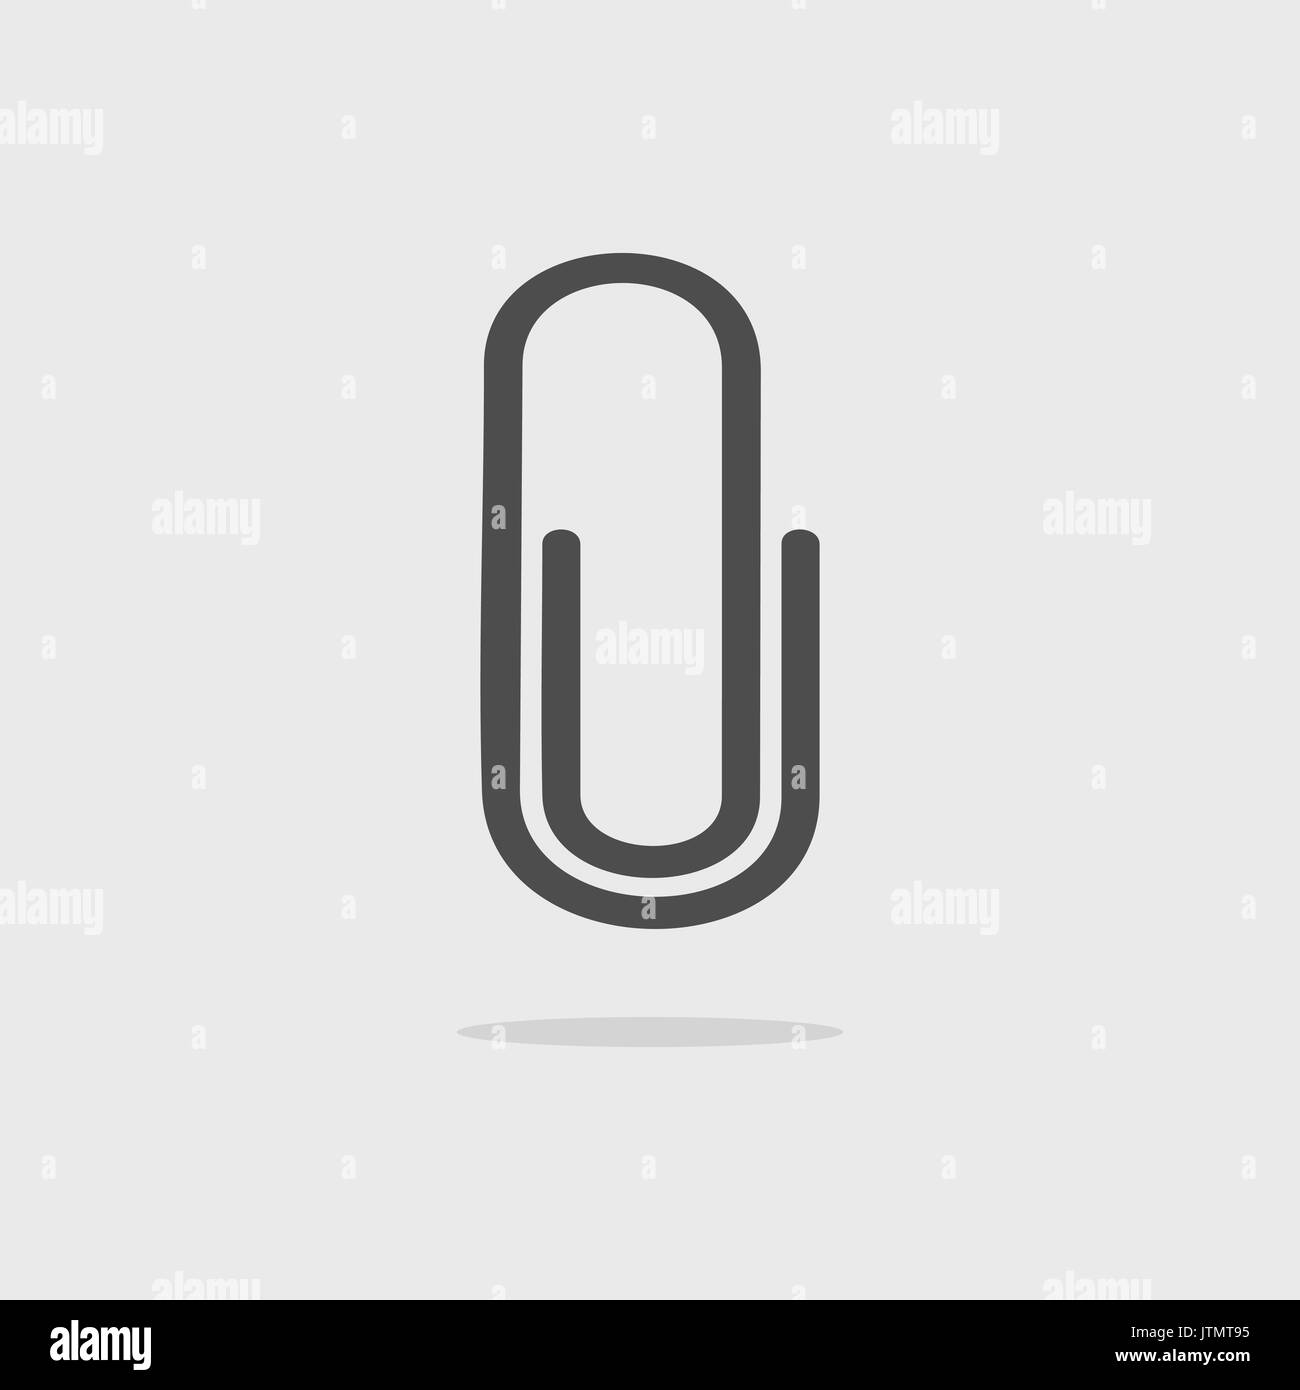 Clip icon with shade on grey background - Stock Vector